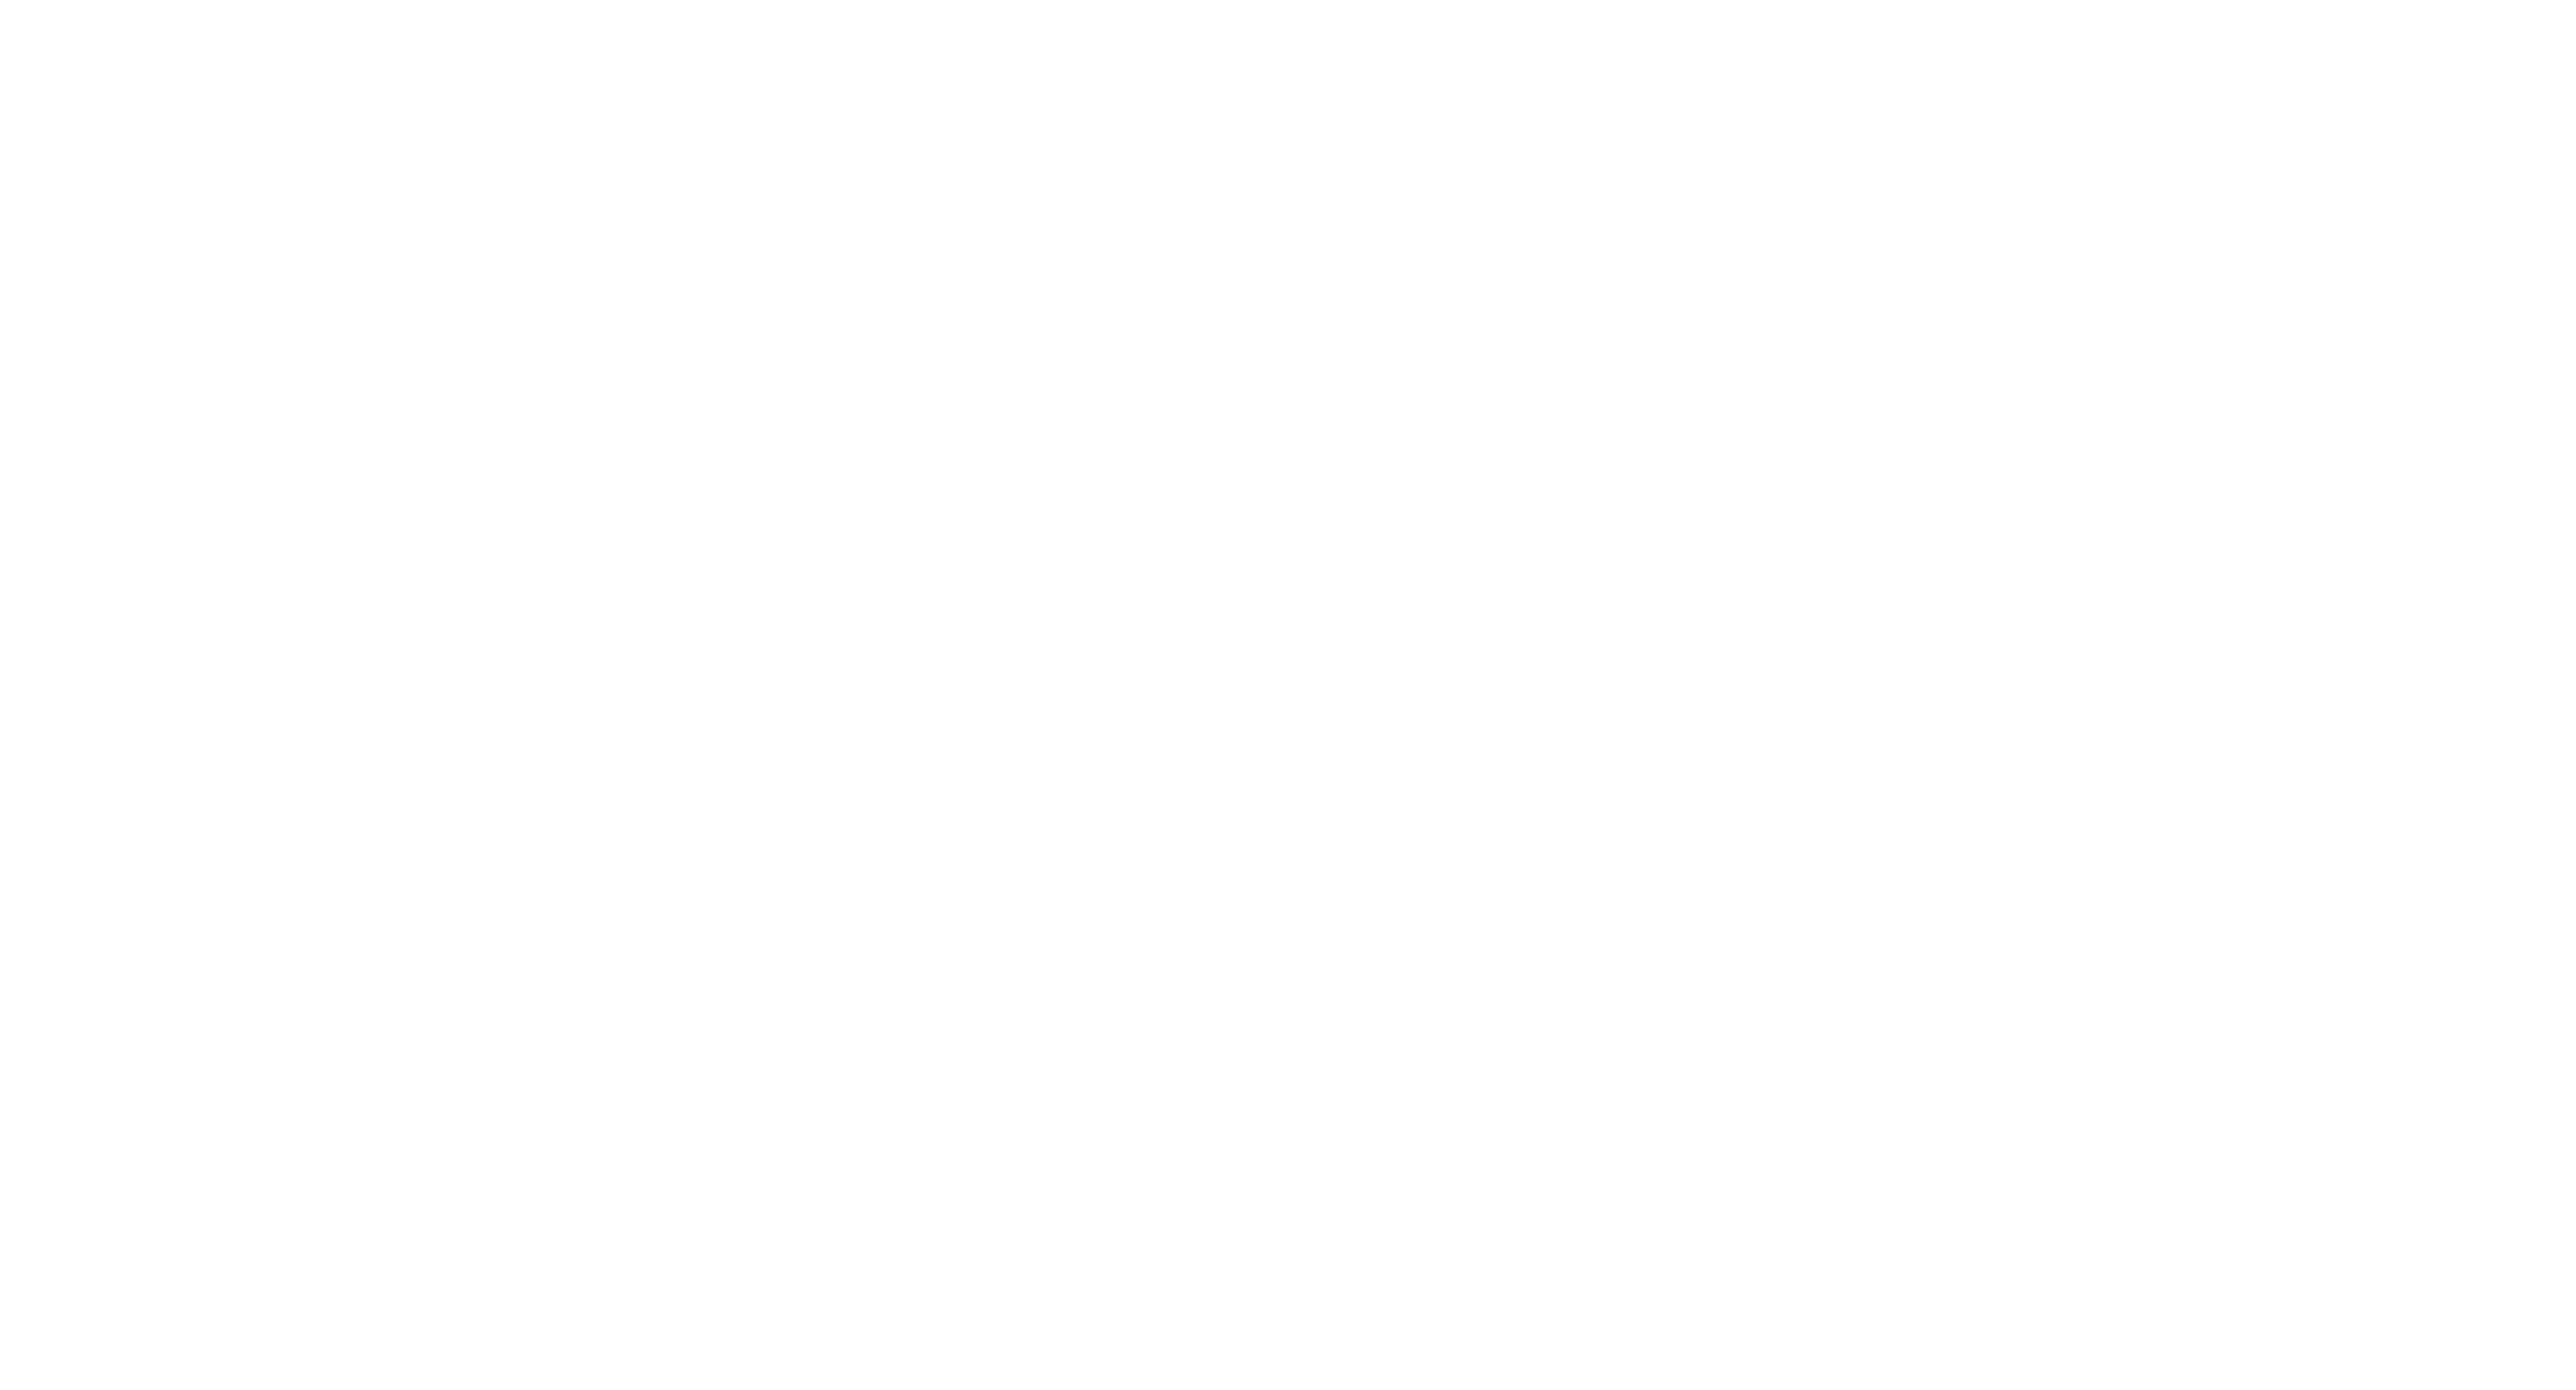 Winchester District Liberal Democrats